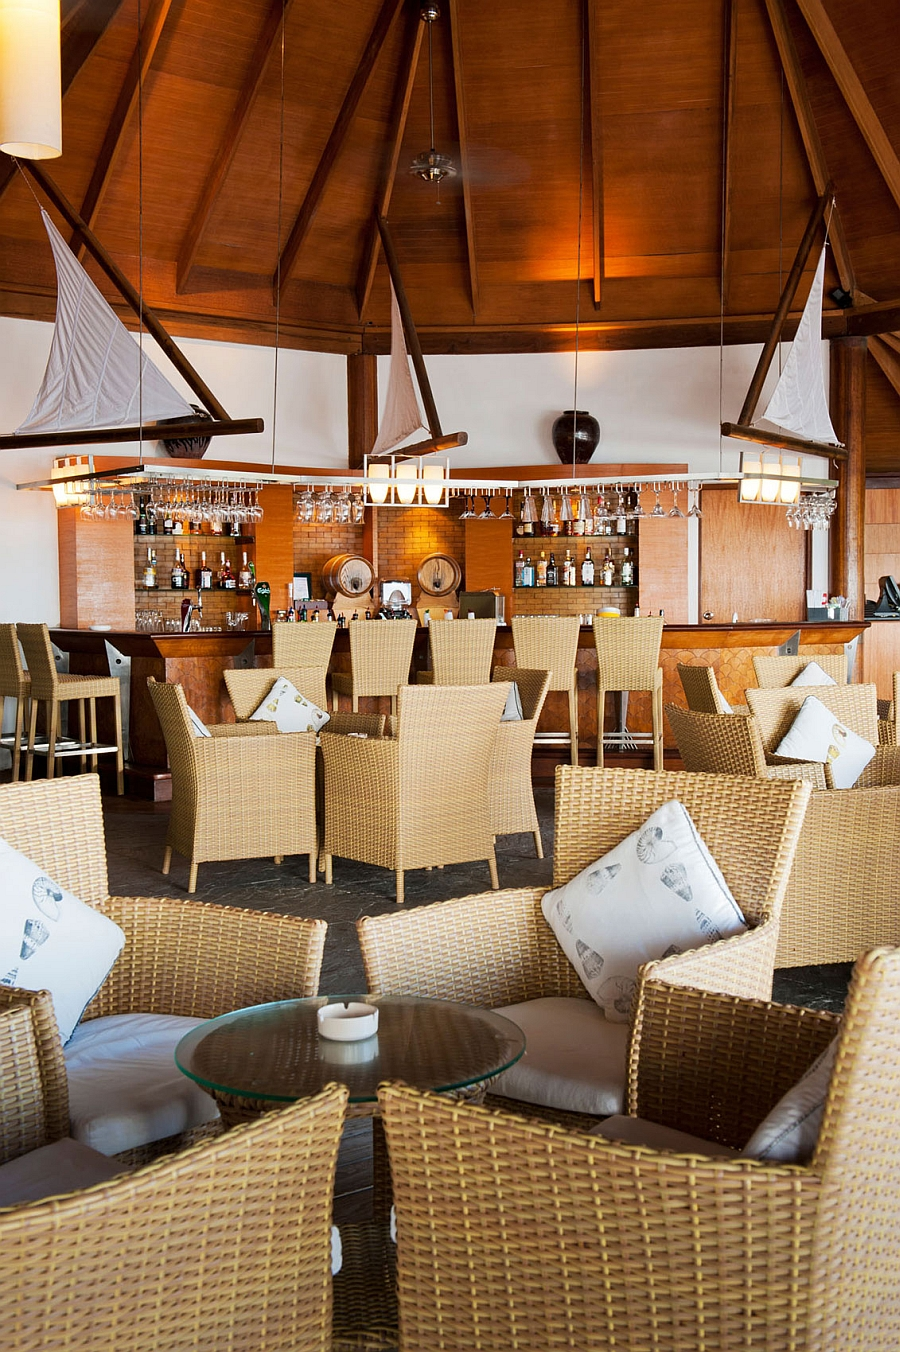 Sip on your favorite drink as you relax at the exquisite Kuramathi Island Resort